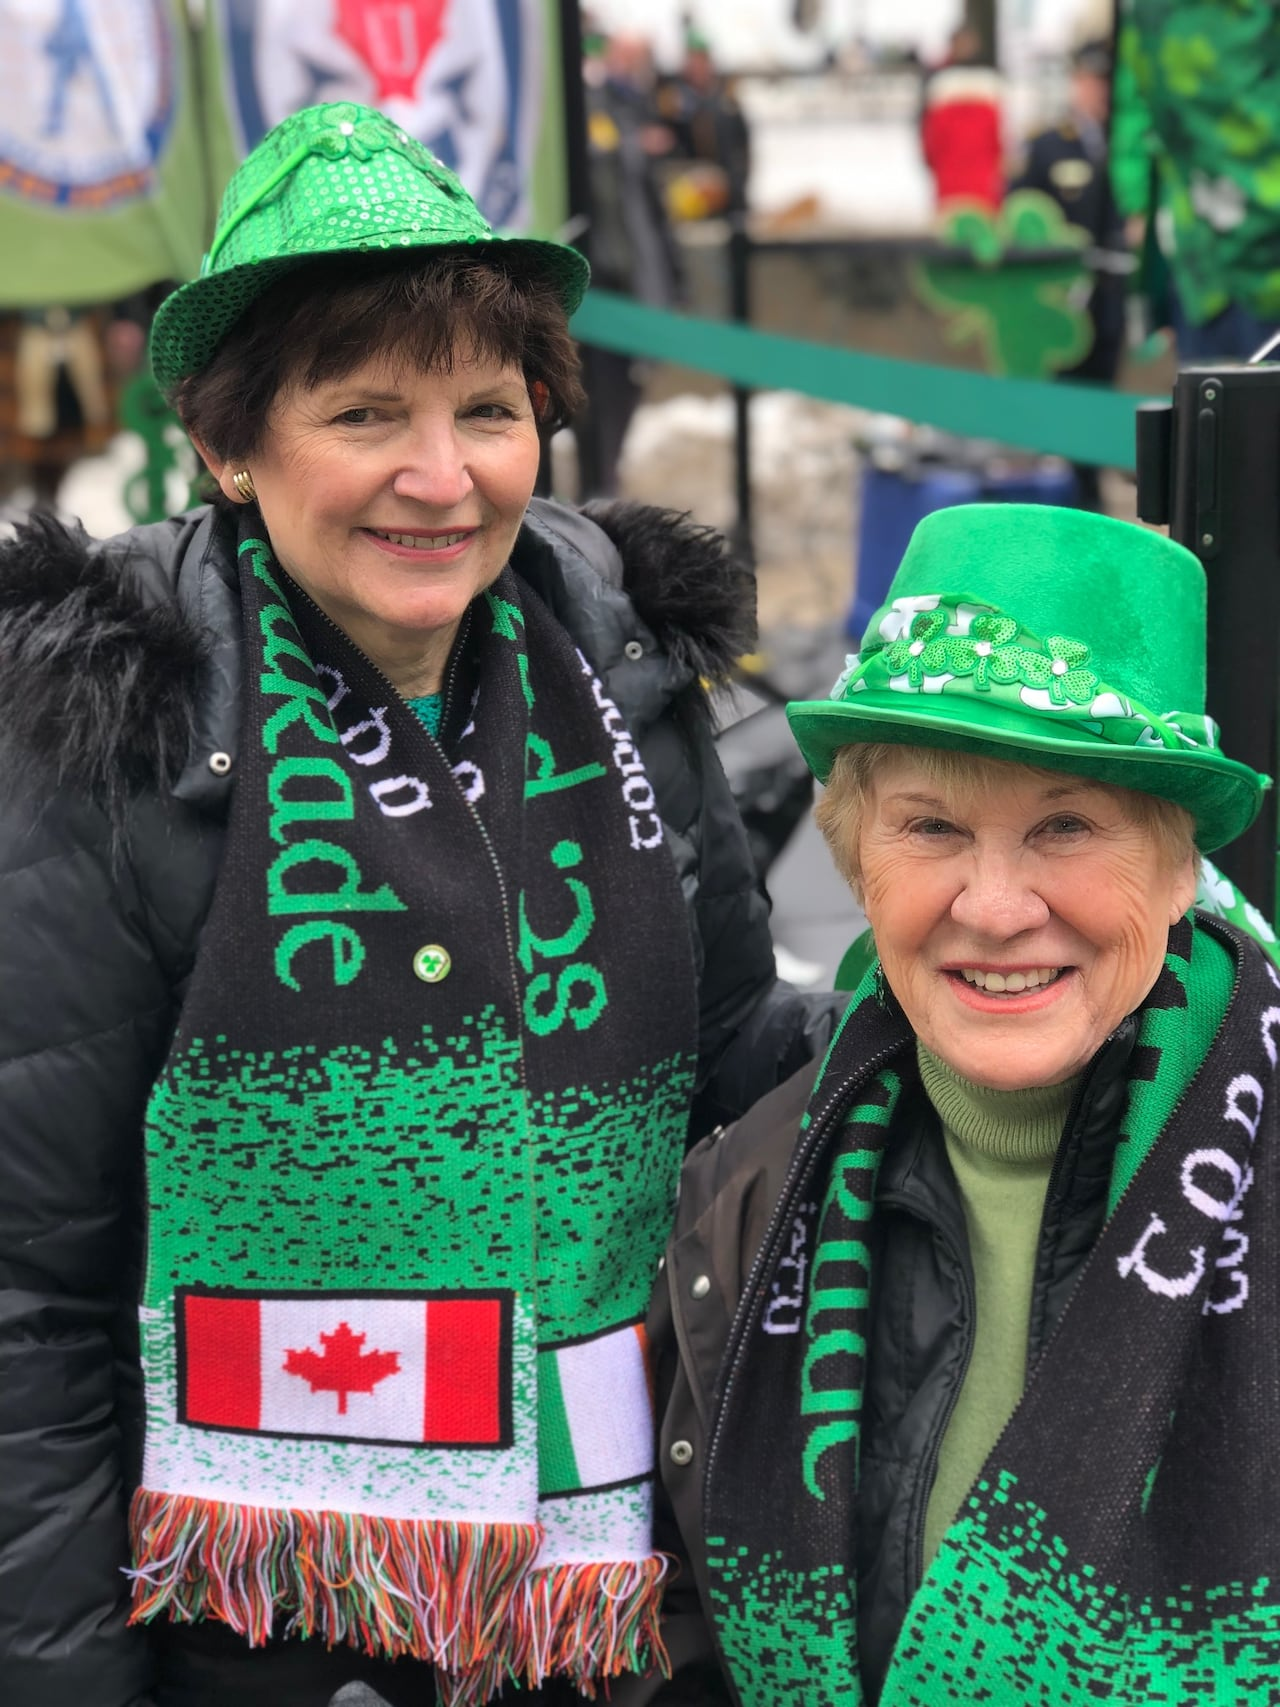 ca246b31037c2 Toronto celebrates all things Irish at annual St. Patrick s Day parade